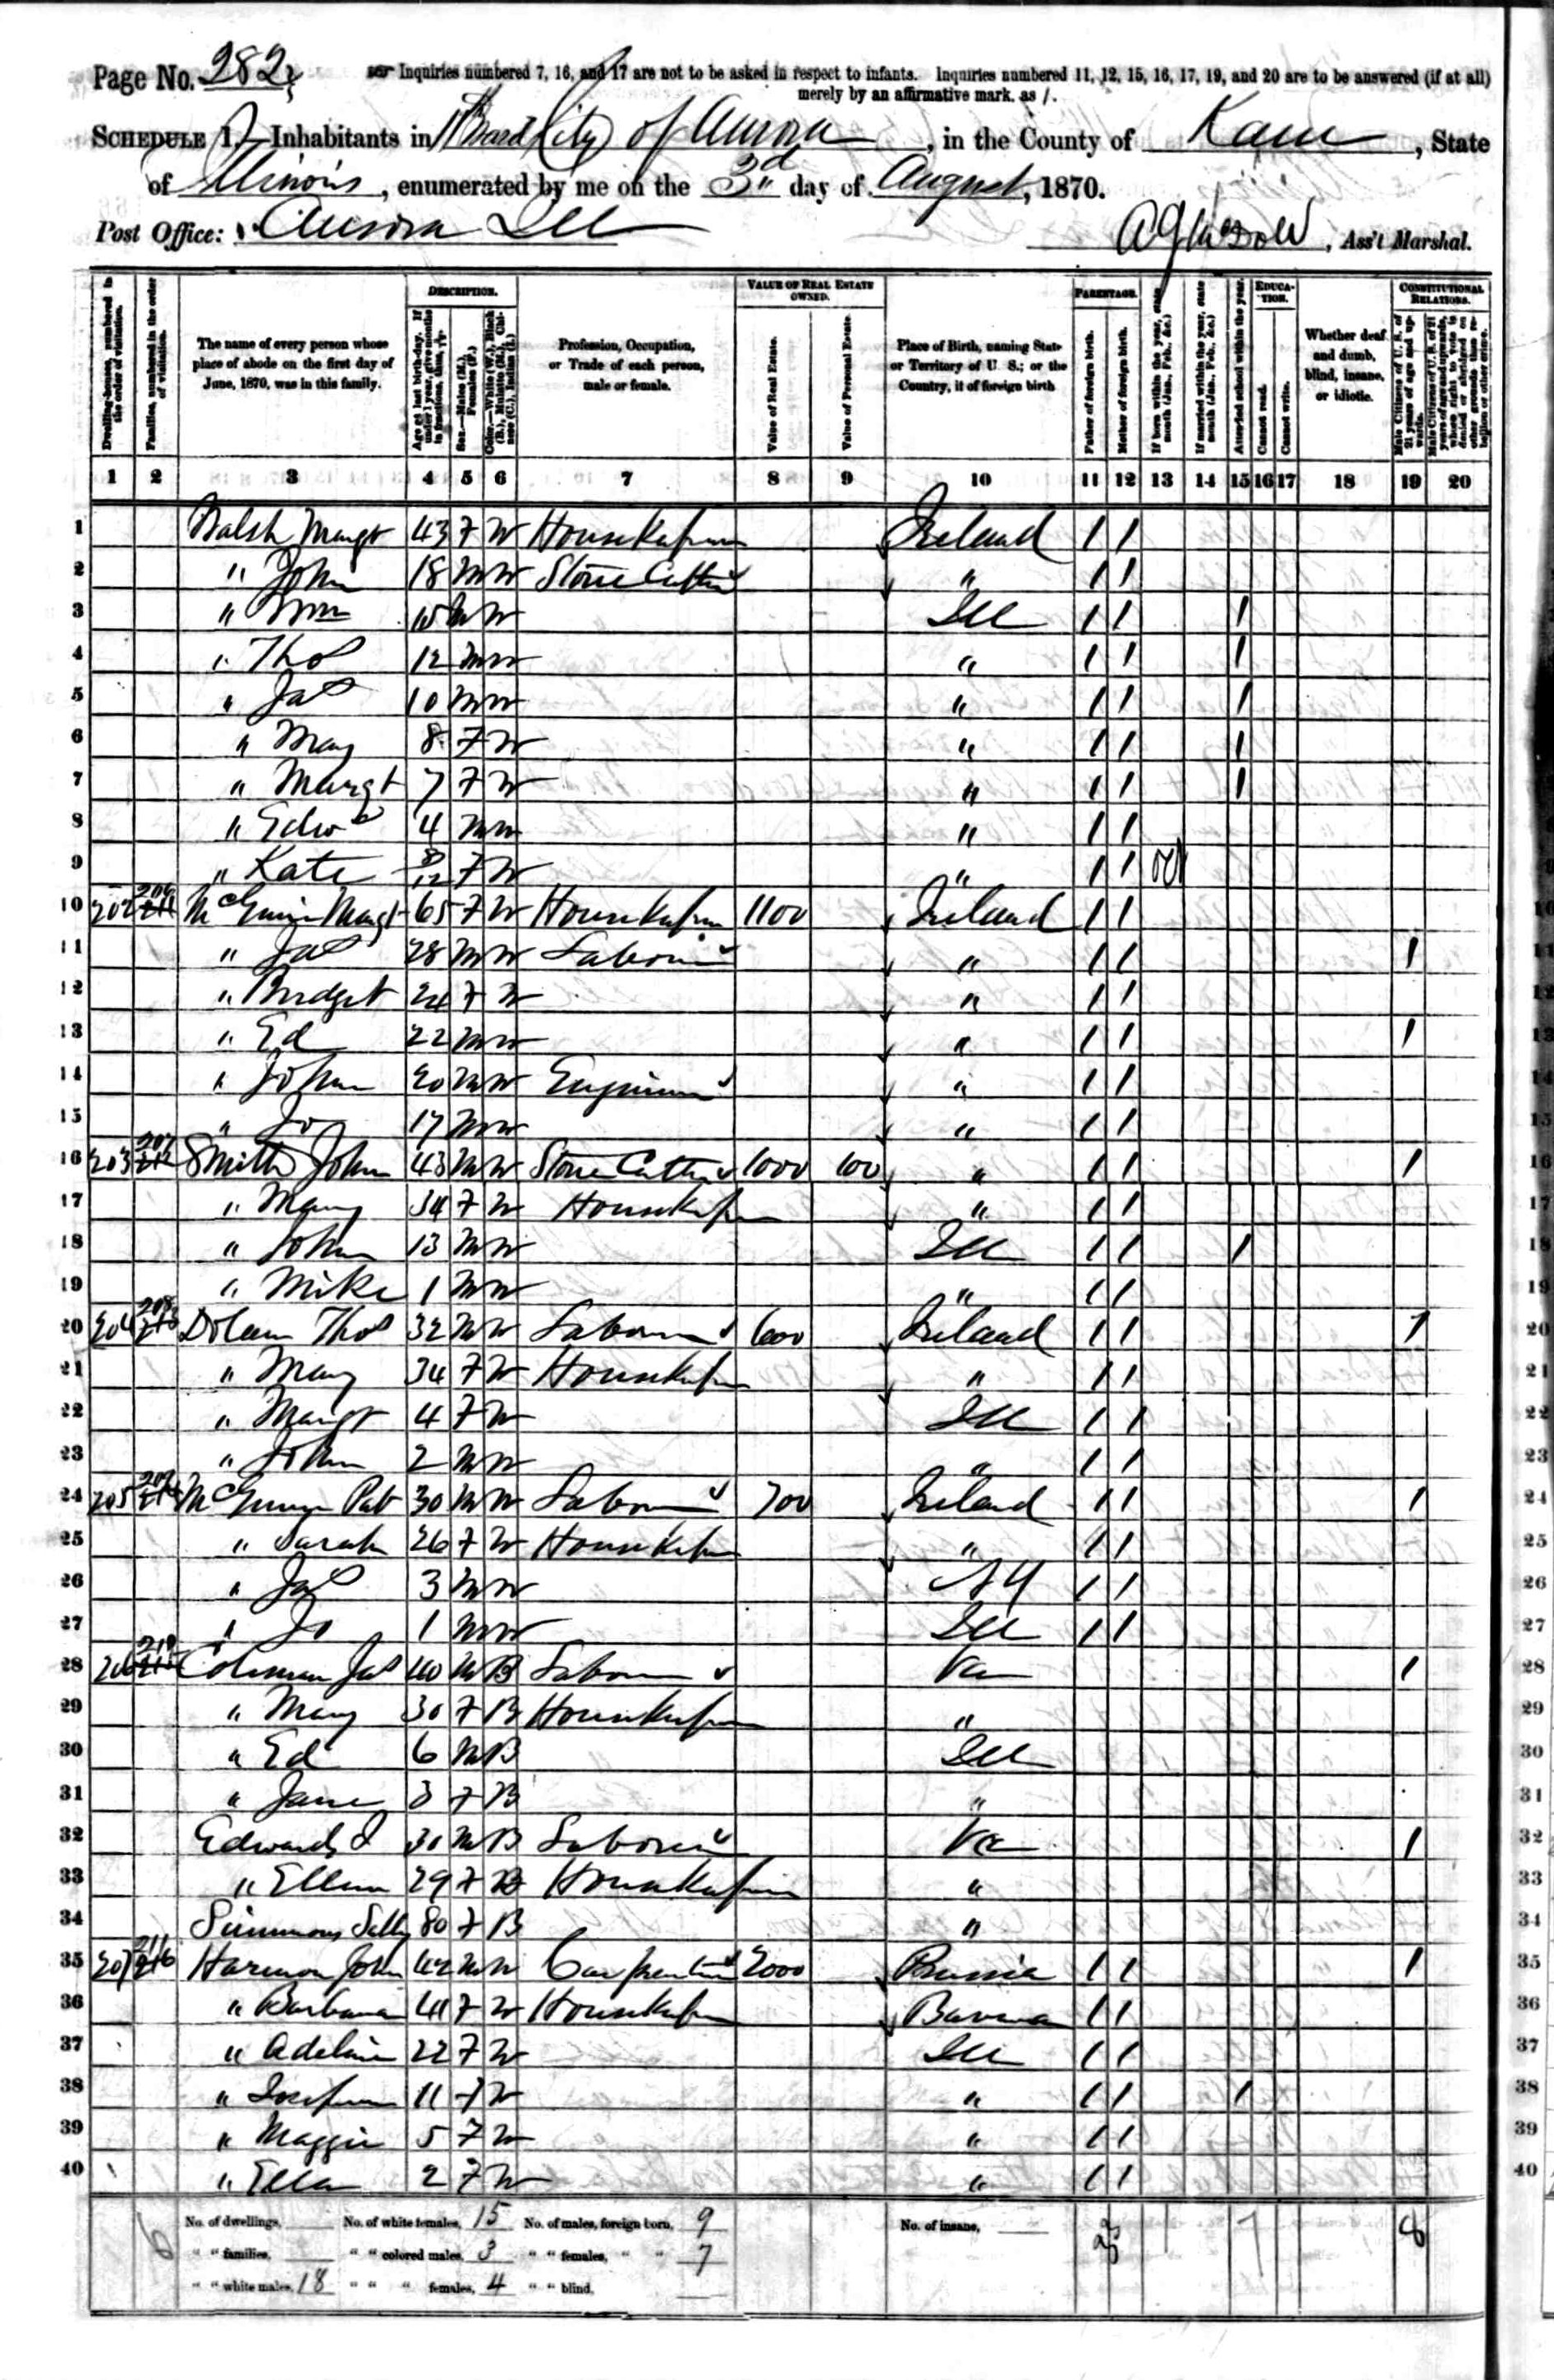 Margaret McGuire US Census 1870.jpg